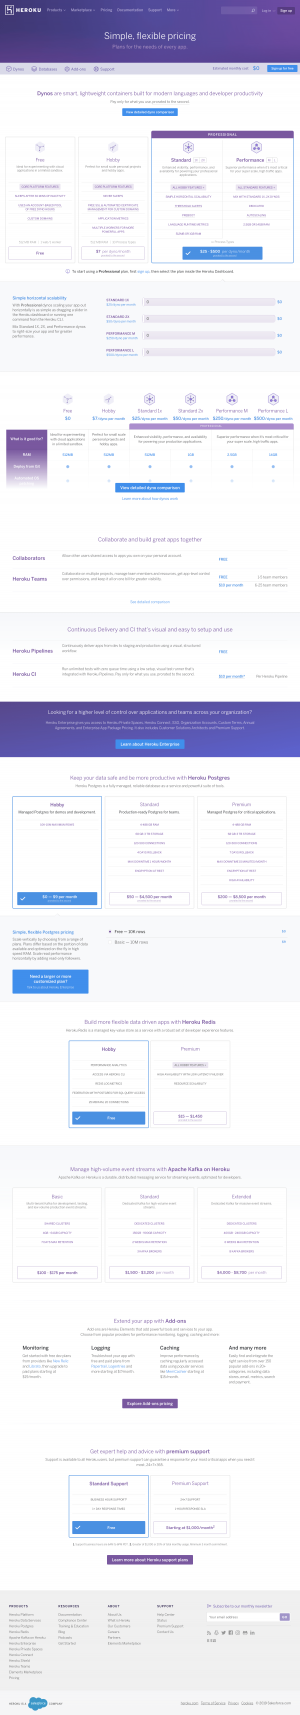 Heroku - Pricing page